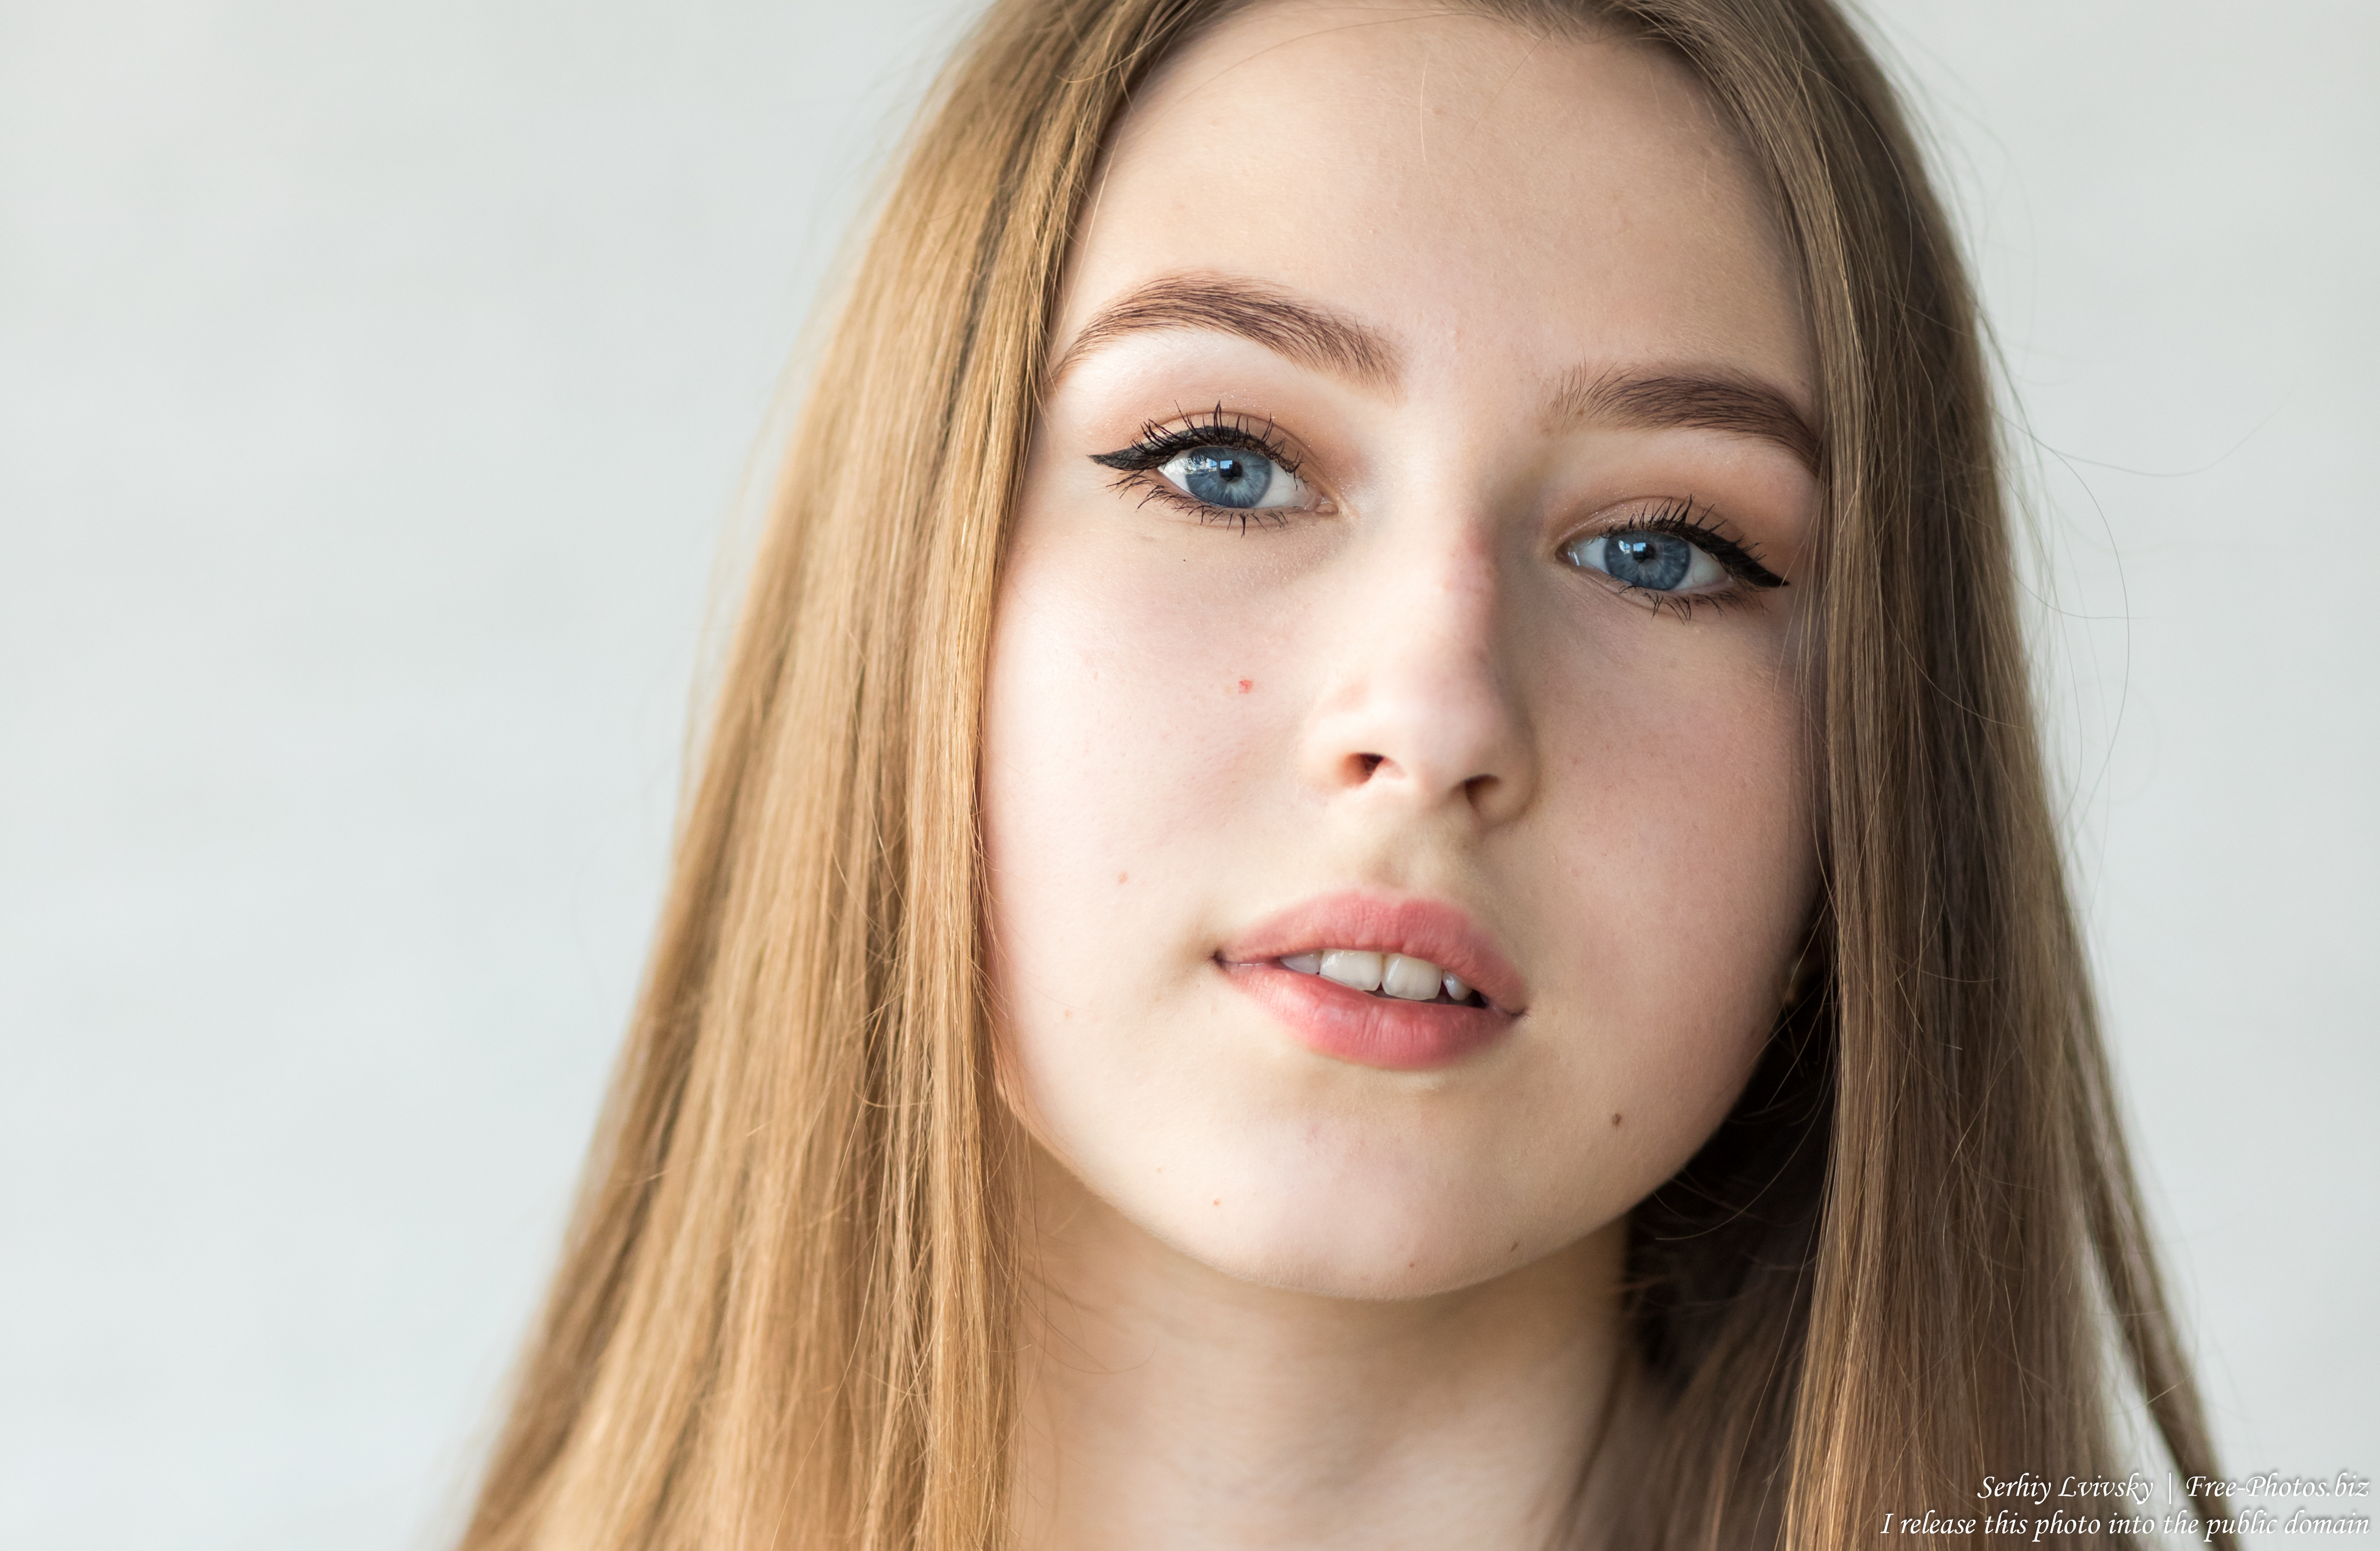 Vika - a 17-year-old girl with blue eyes and natural fair hair photographed in June 2019 by Serhiy Lvivsky, picture 11